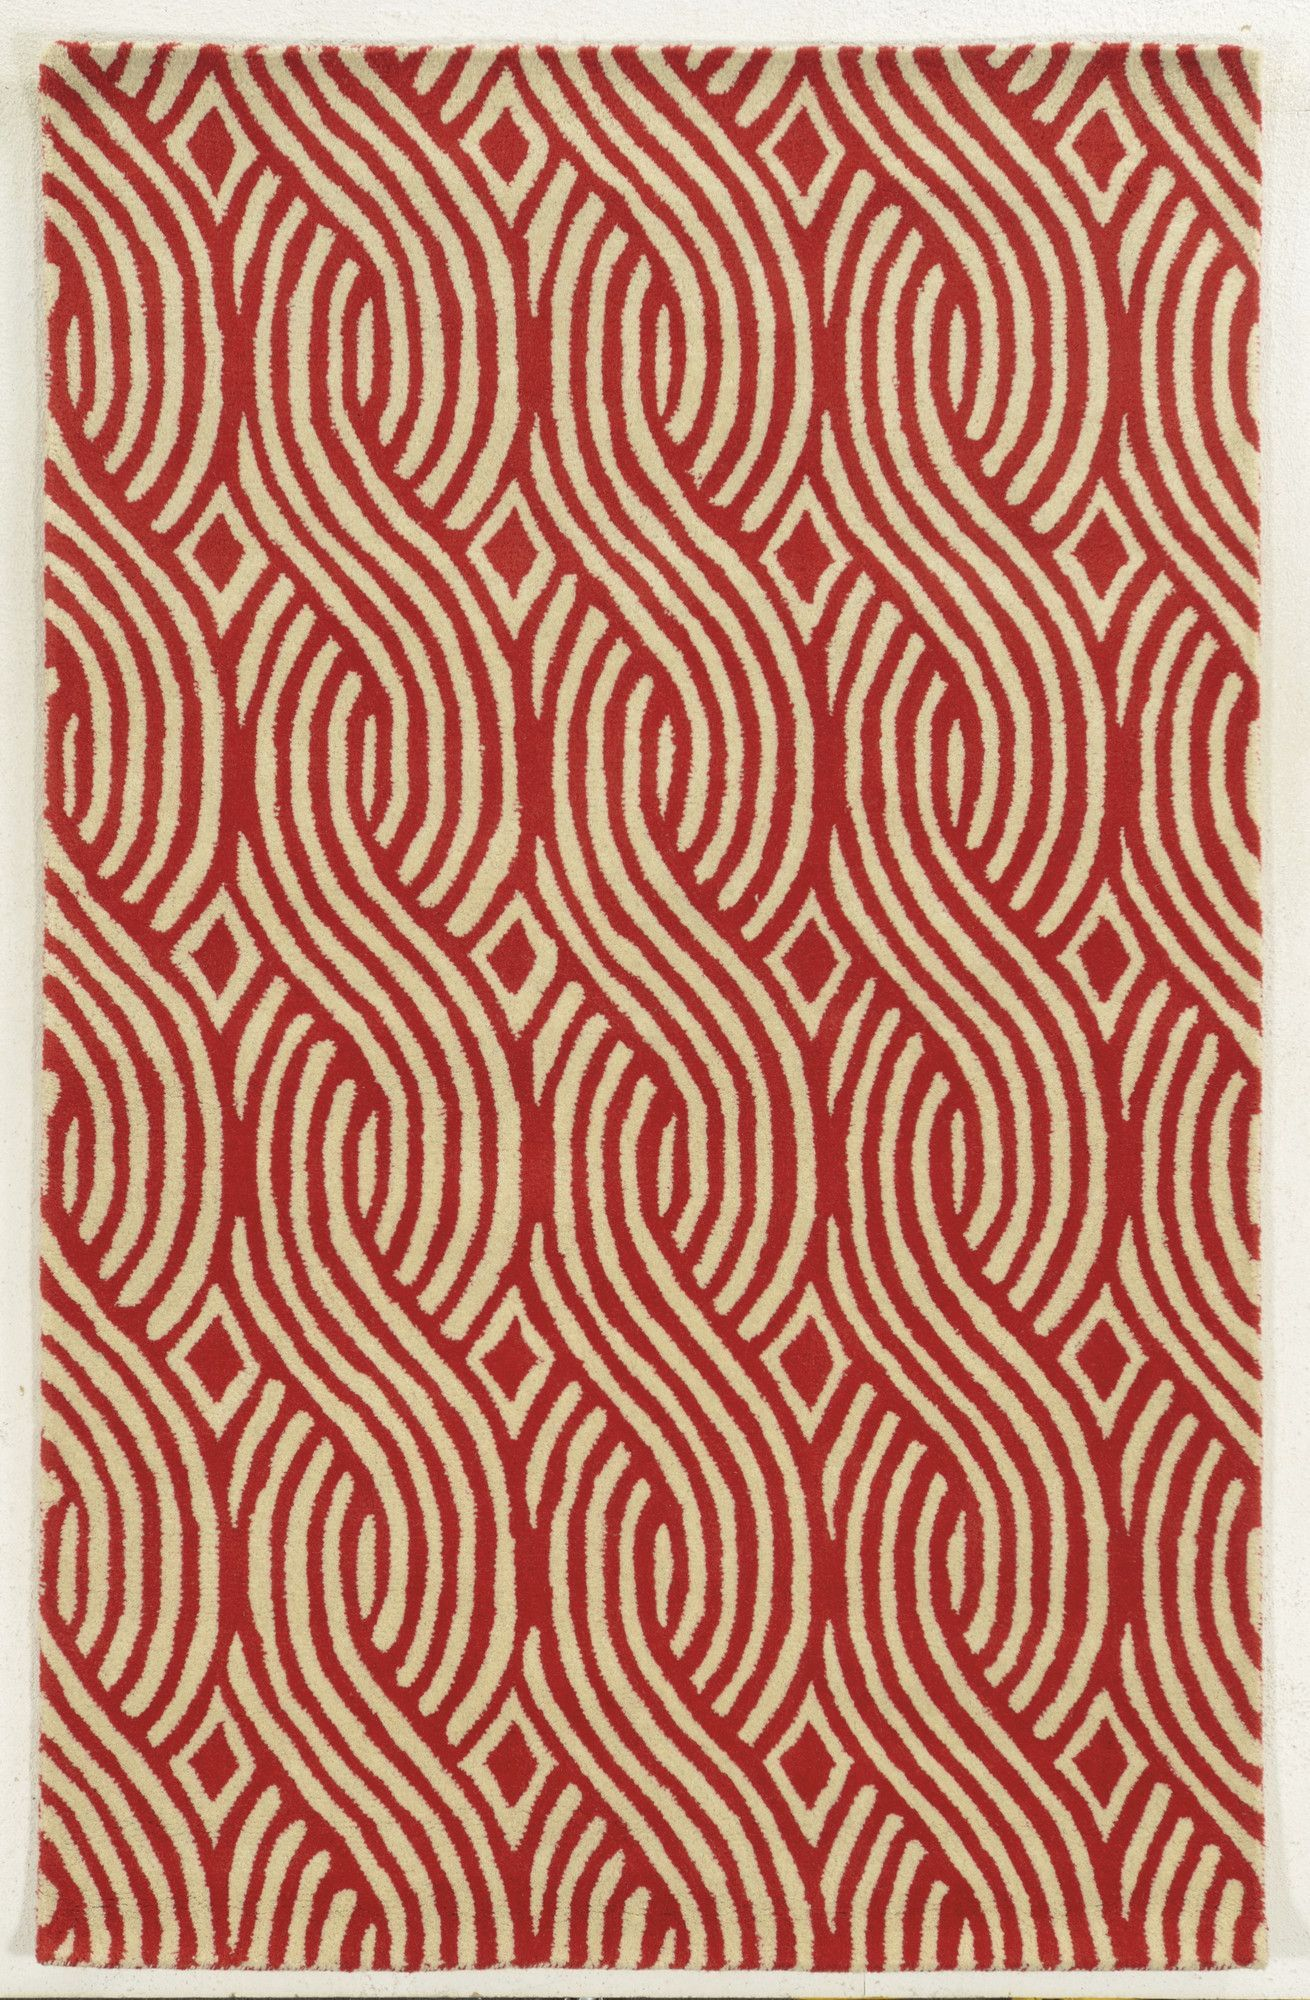 Abstract Handmade Tufted Wool Red Gold Area Rug In 2020 Wool Area Rugs Area Rugs Rugs